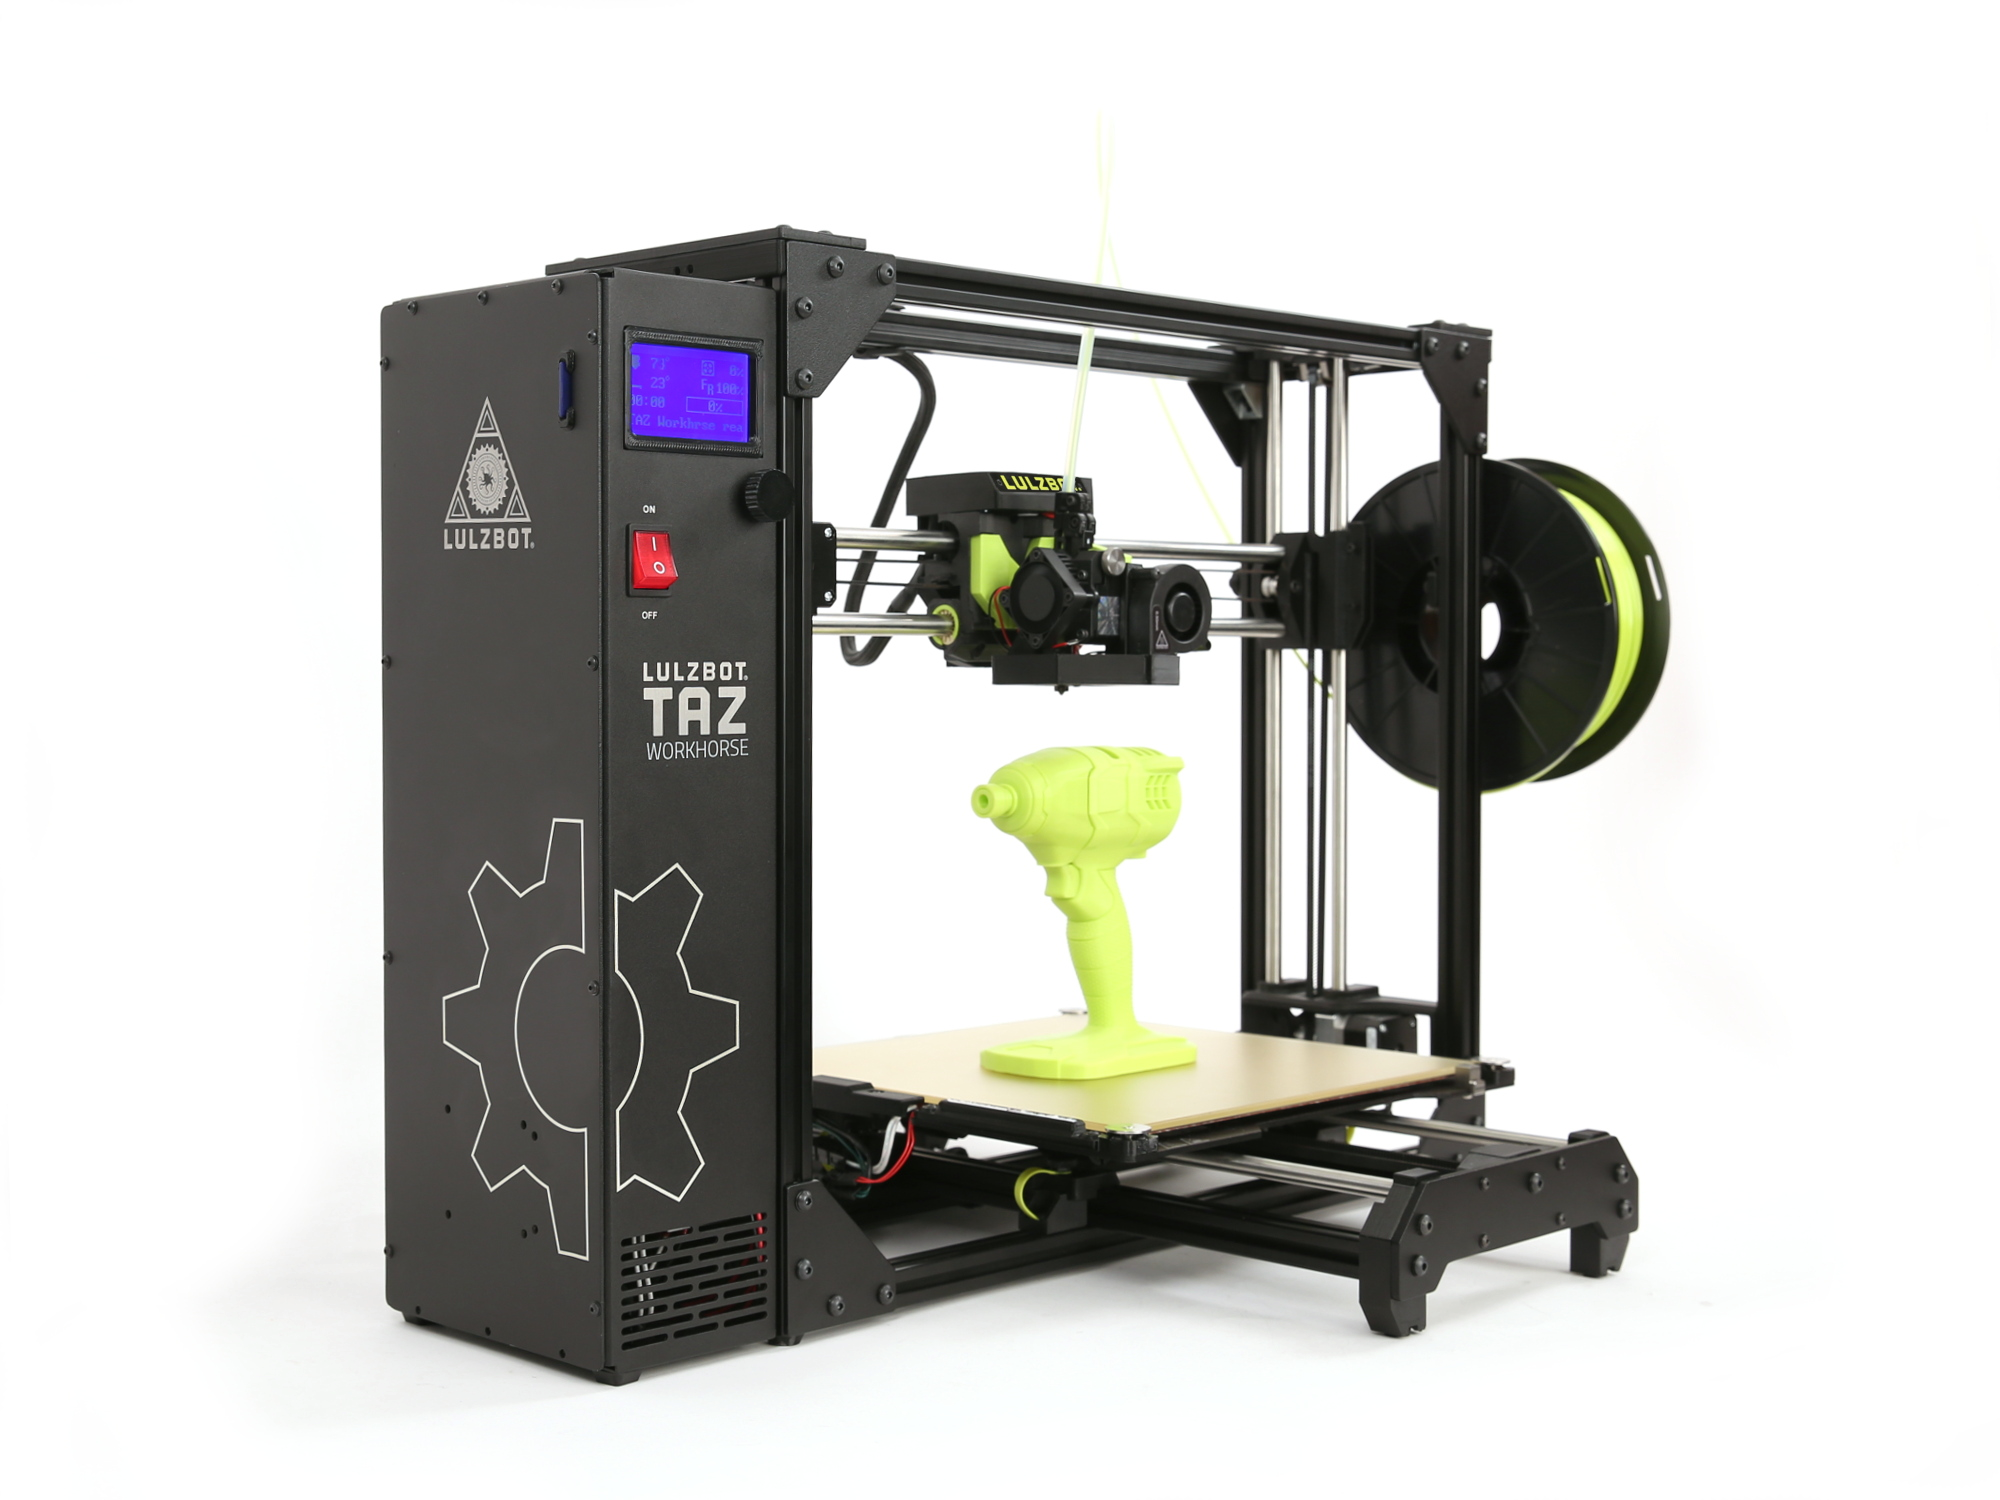 Lulzbot Workhorse Edition